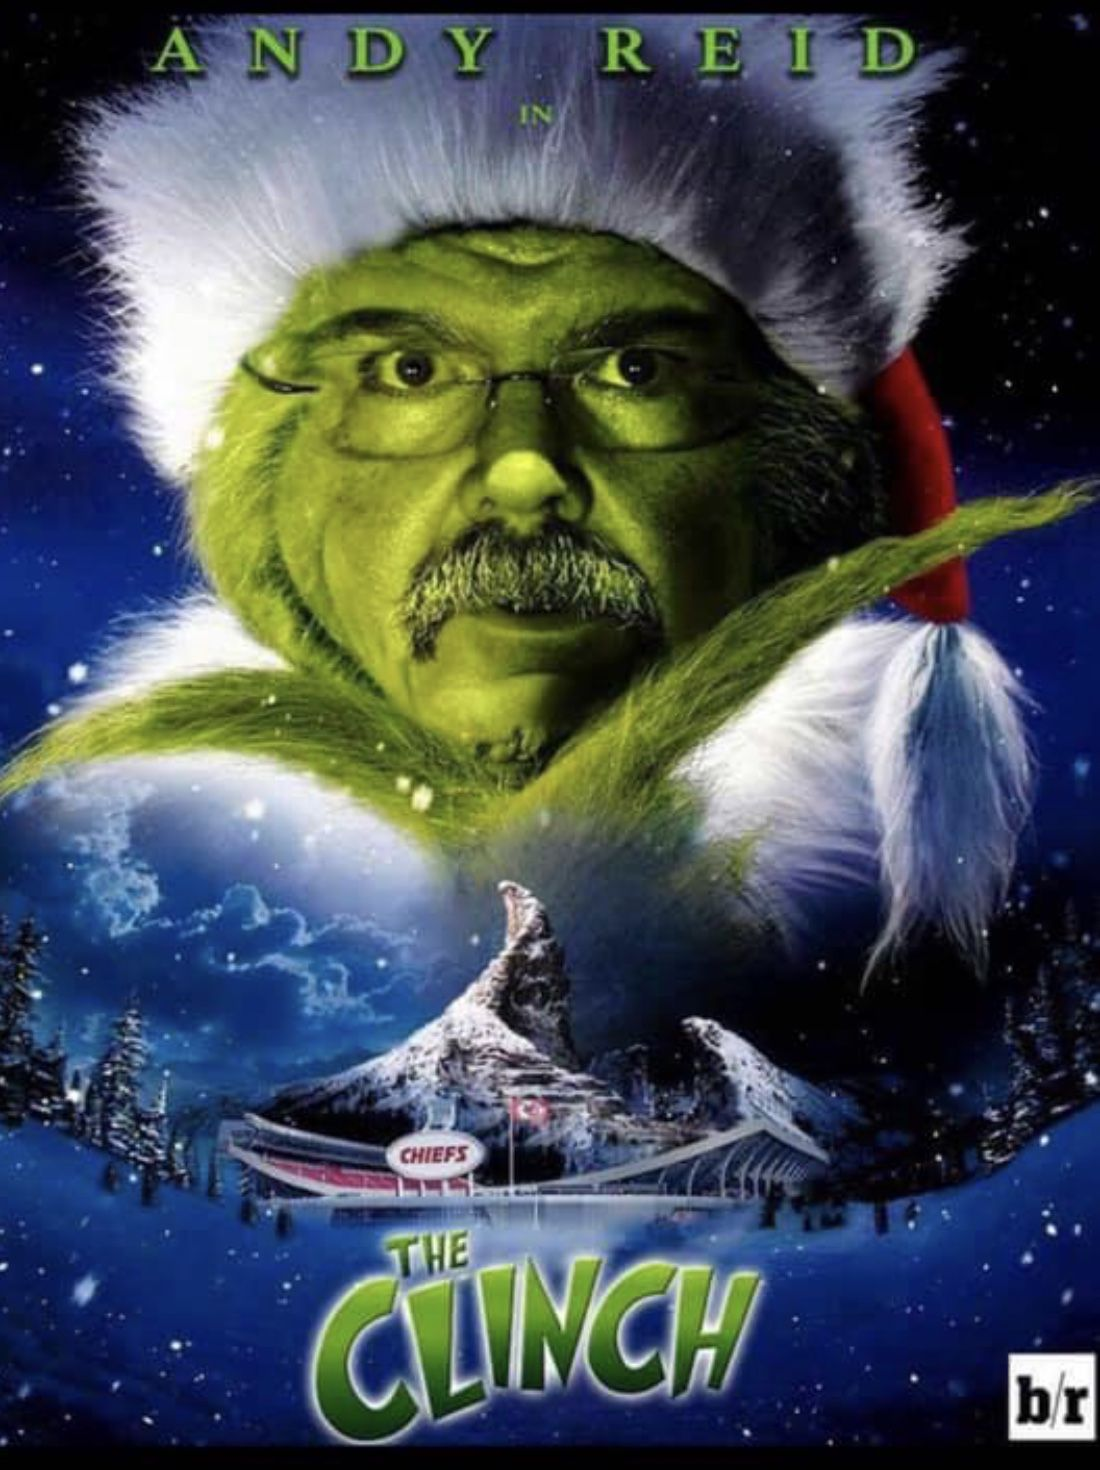 How The Grinch Stole Christmas 2020 Yify ANDY REID GRINCH WHO STOLE THE AFC WEST | Kids christmas movies